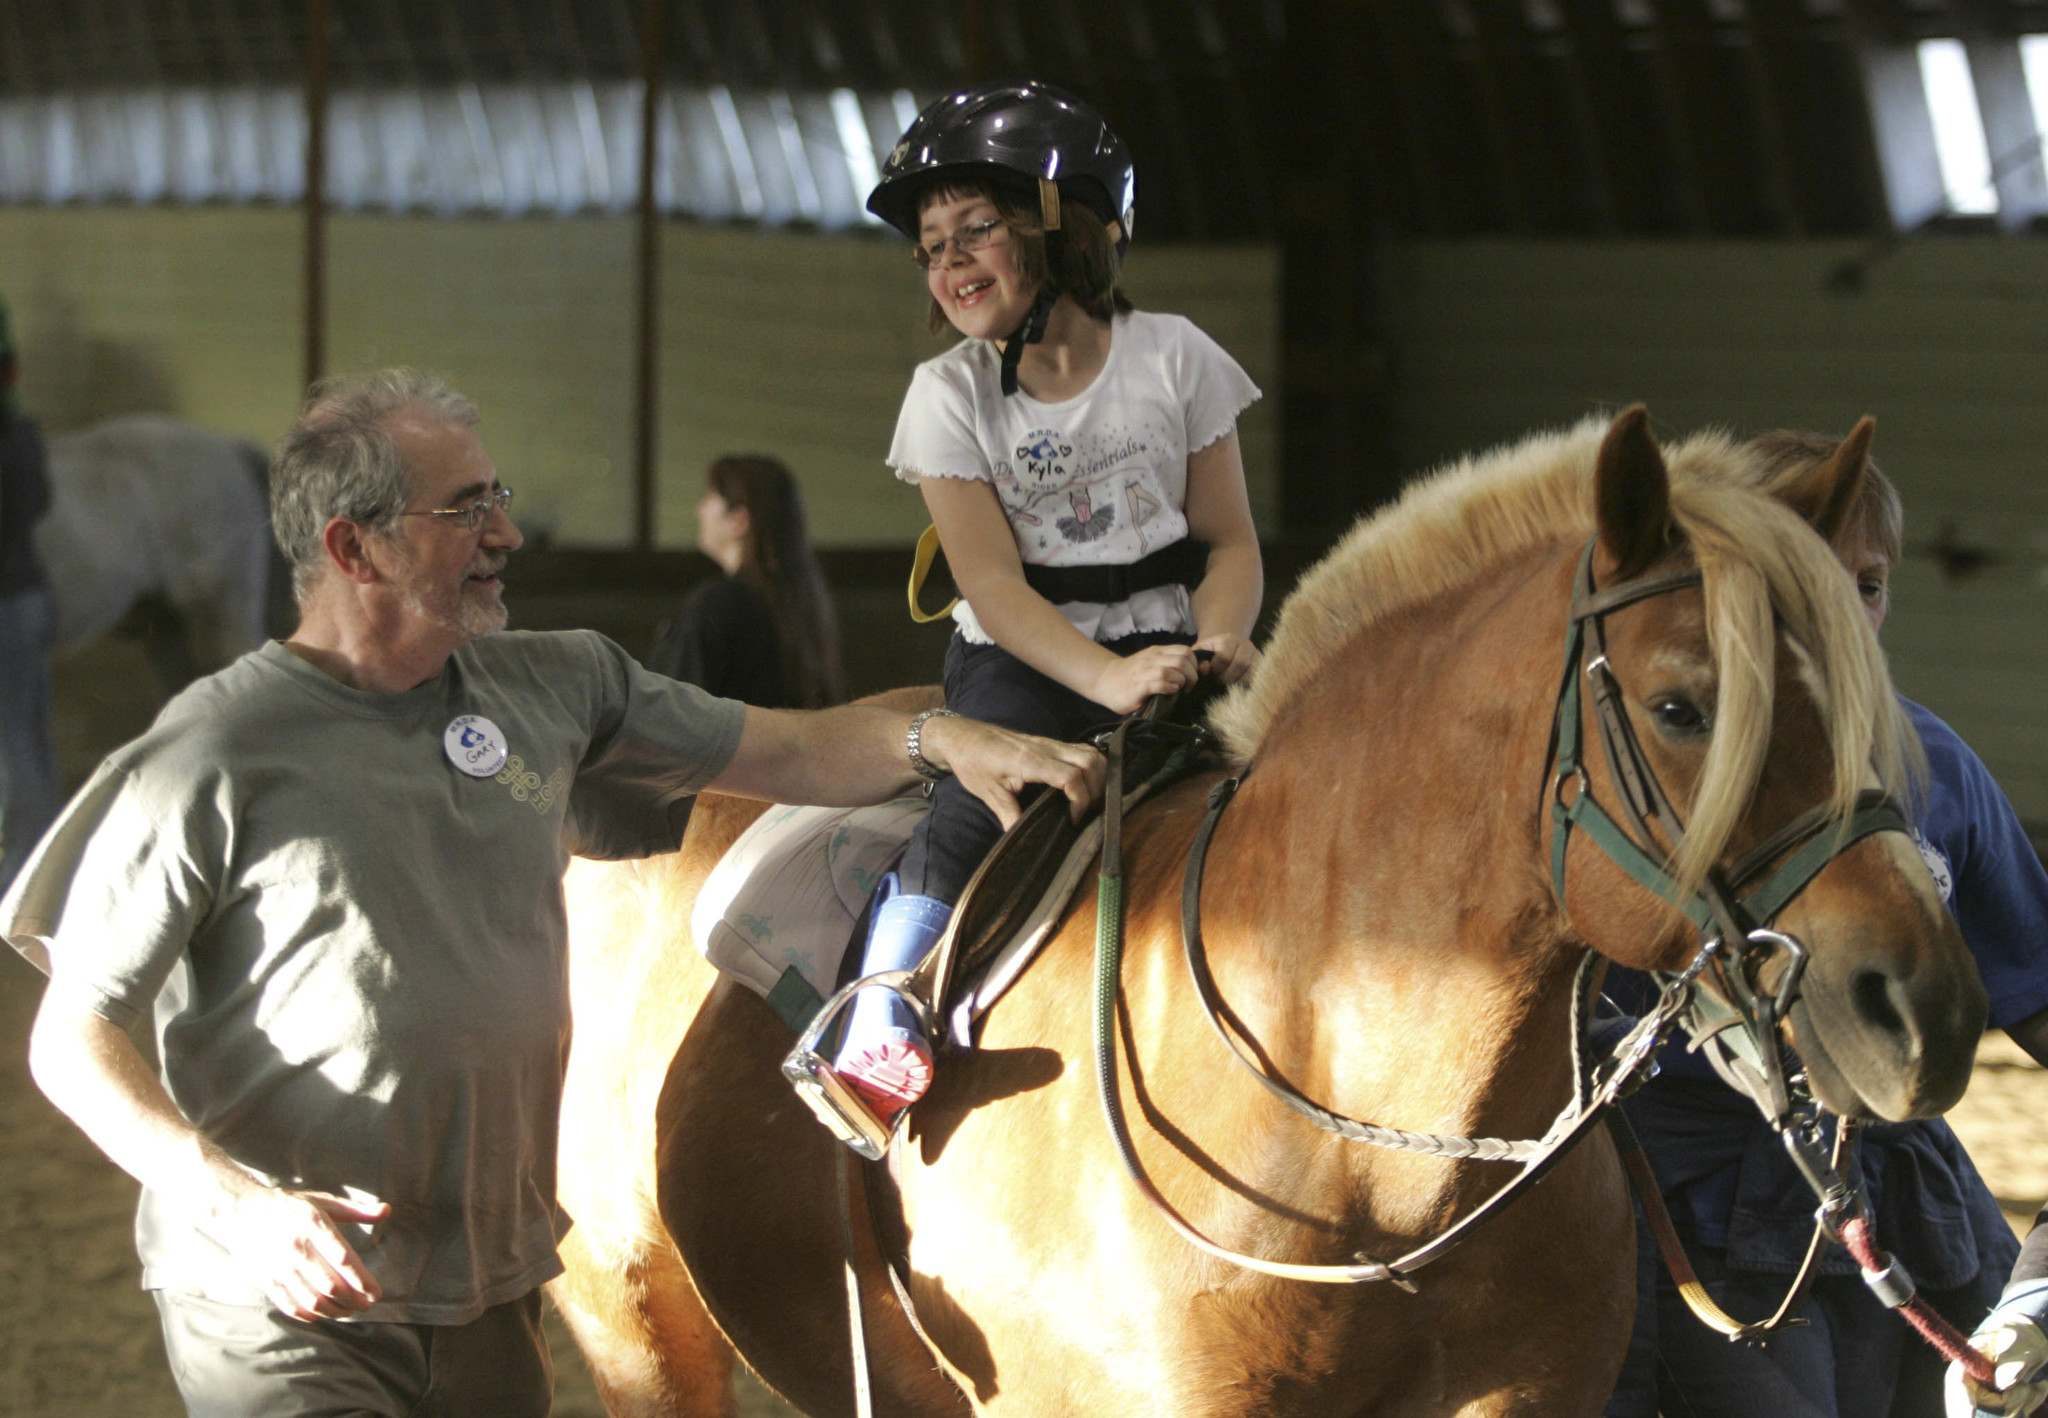 Horseback riding is &#39;an incredible activity&#39; for children and adults living with any disability or challenge, chairwoman Darraugh McMichael said. (Boris Minkevich / Free Press files)</p></p>